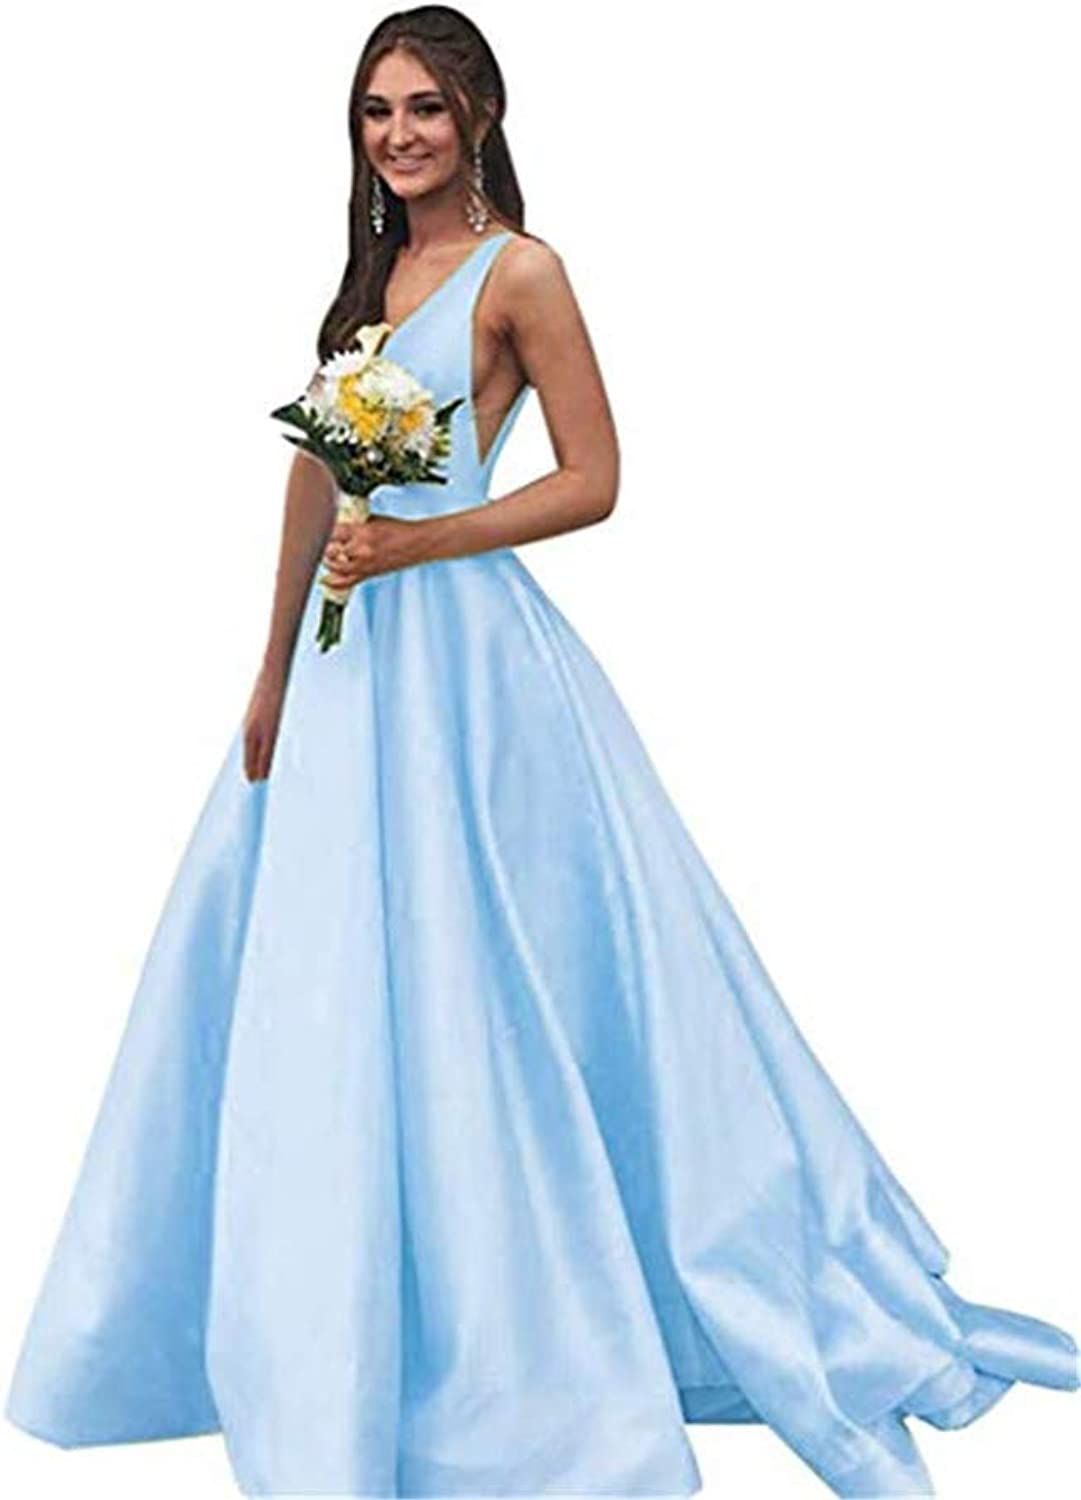 Datangep V Neck Prom Dresses Long Stain Evening Ball Gowns for Women Formal with Pockets